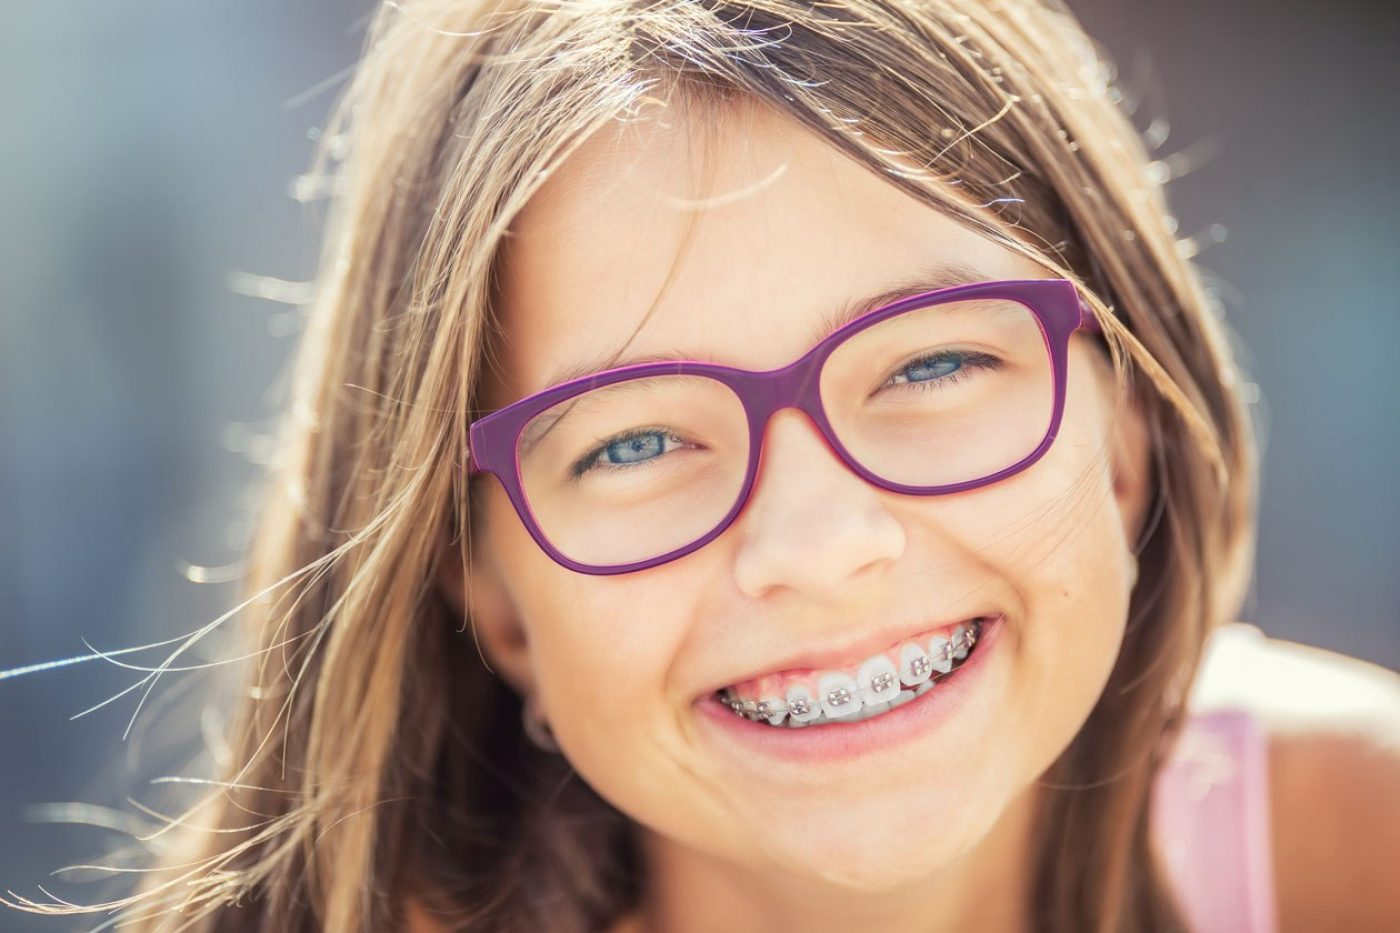 Orthodontics Childrens Braces Uppingham Dental Implant Clinic